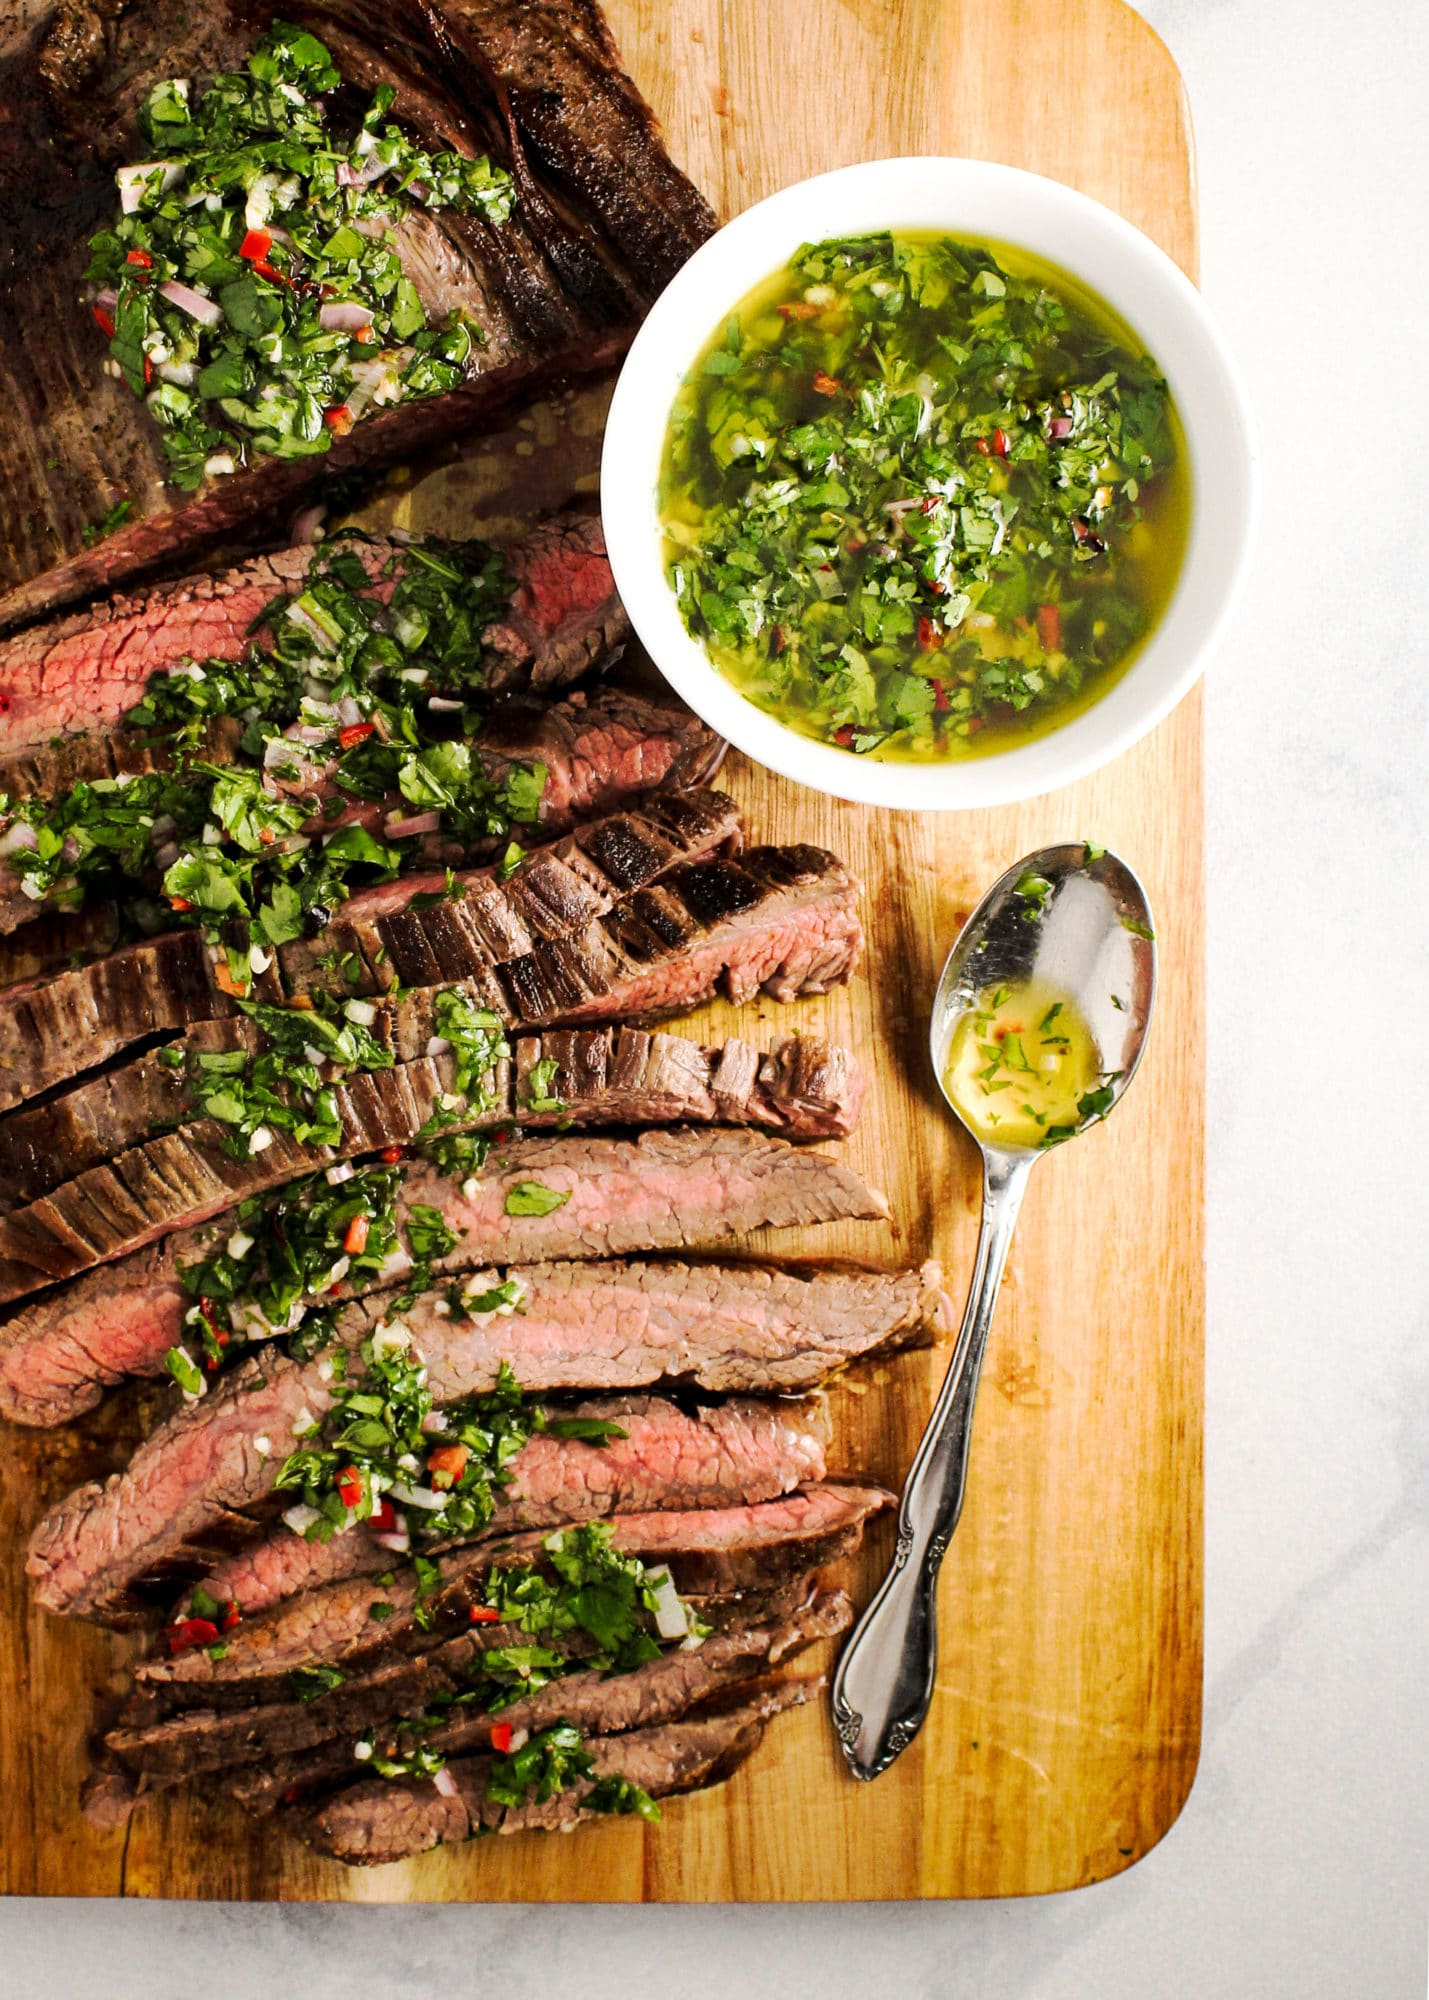 Skillet Steak with Kale Chimichurri